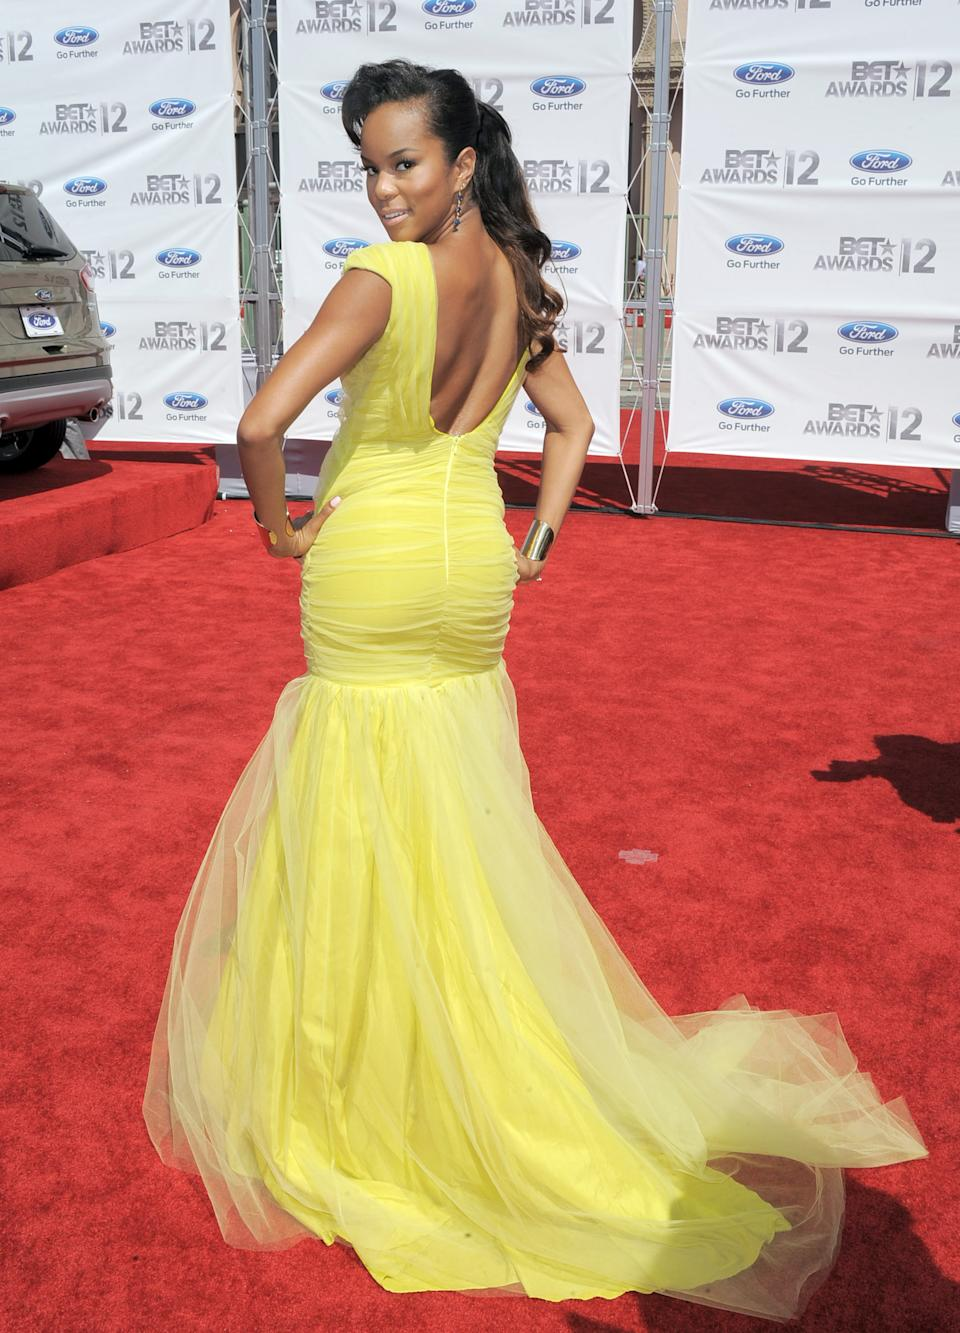 LeToya Luckett arrives at the BET Awards on Sunday, July 1, 2012, in Los Angeles. (Photo by Jordan Strauss/Invision/AP)